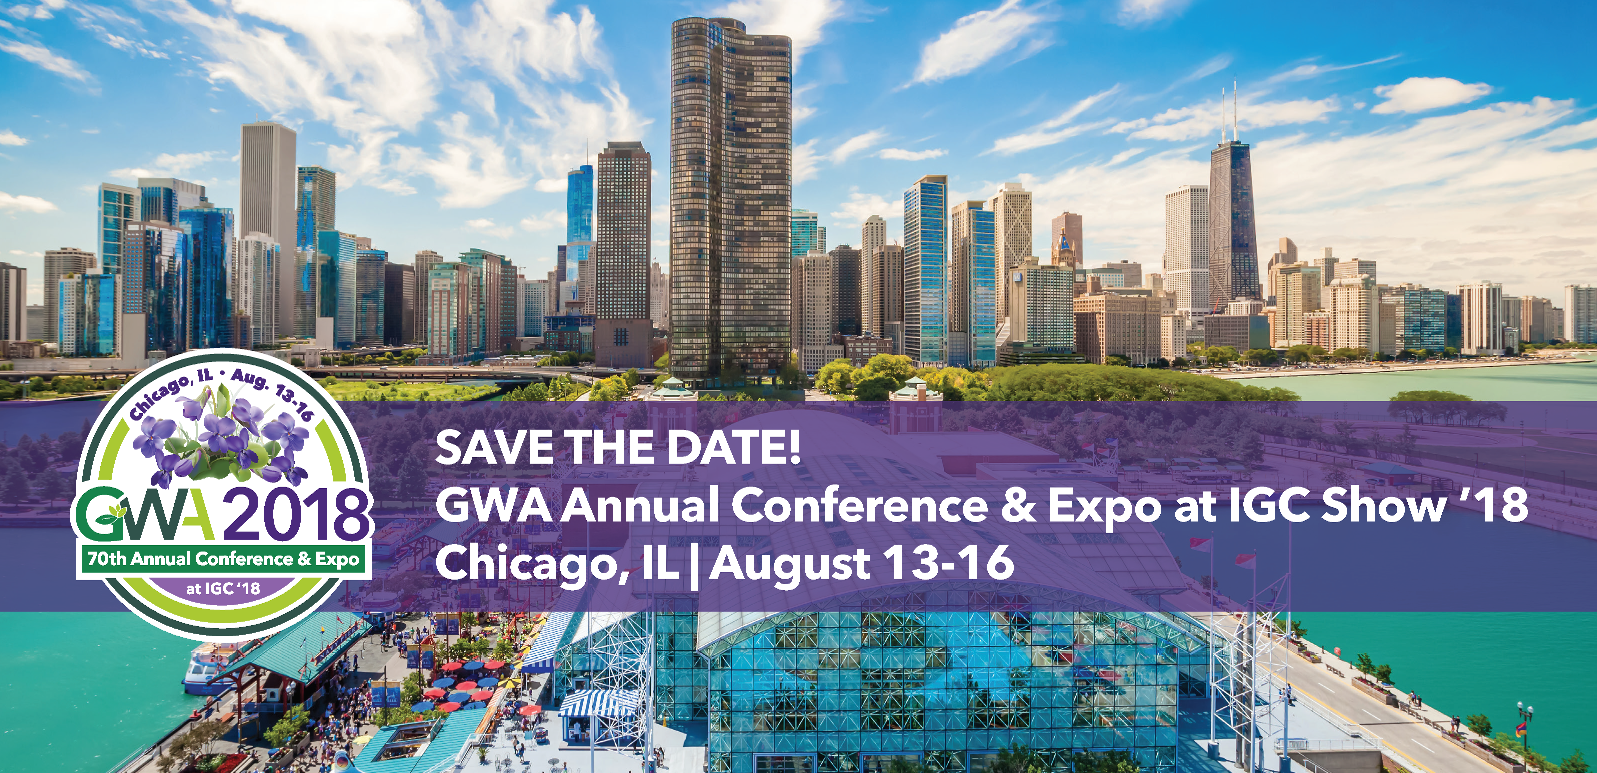 GWA2018_Save_the_Date.png